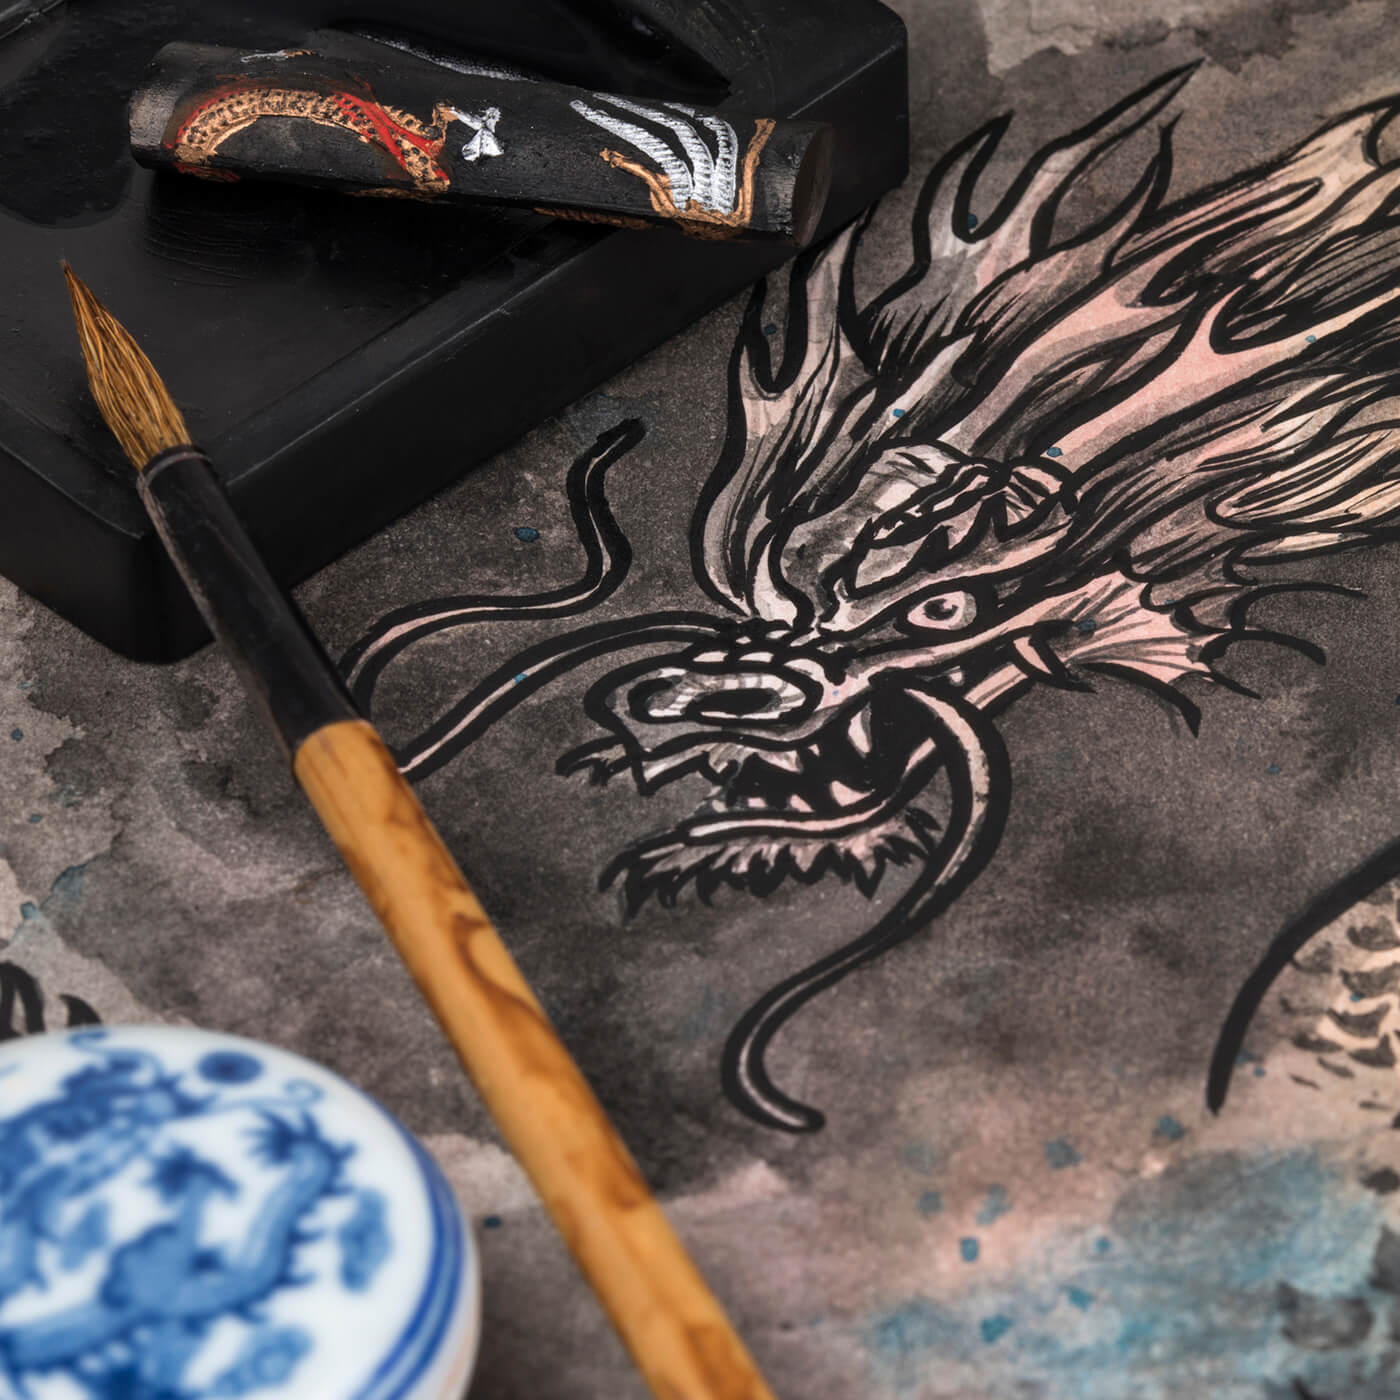 1-meaningful-drawings-chinese-dragons.jpg